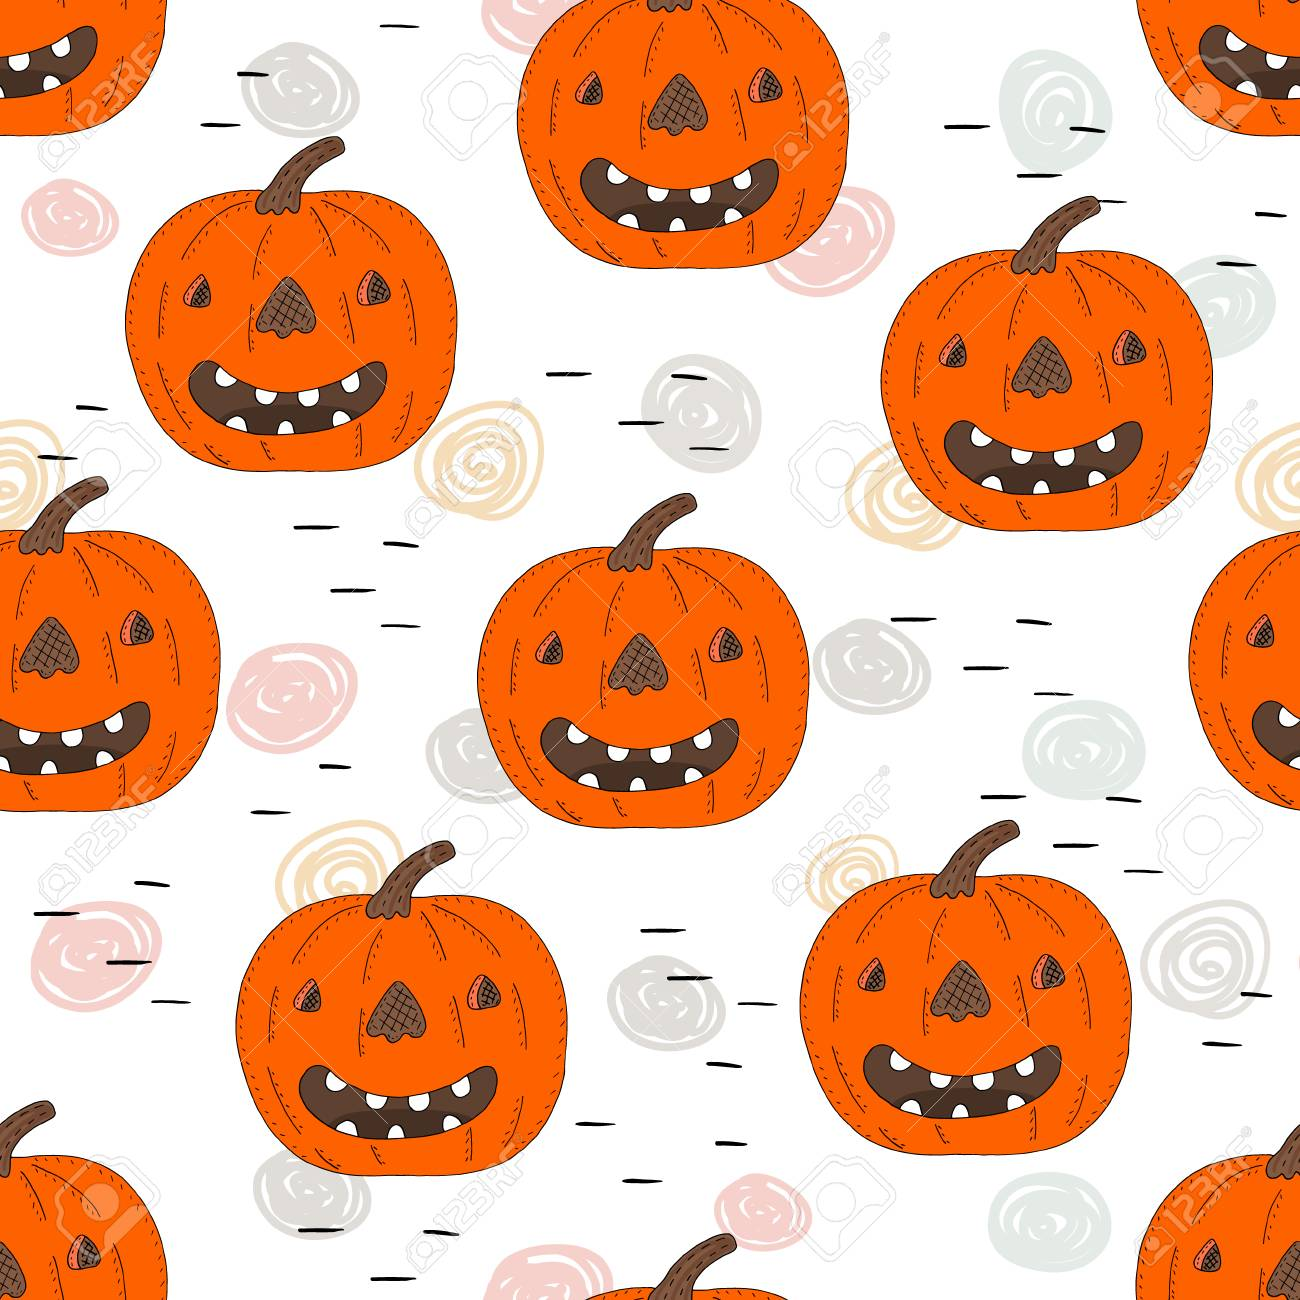 Happy Halloween Print With Pumpkin Printable Templates Royalty